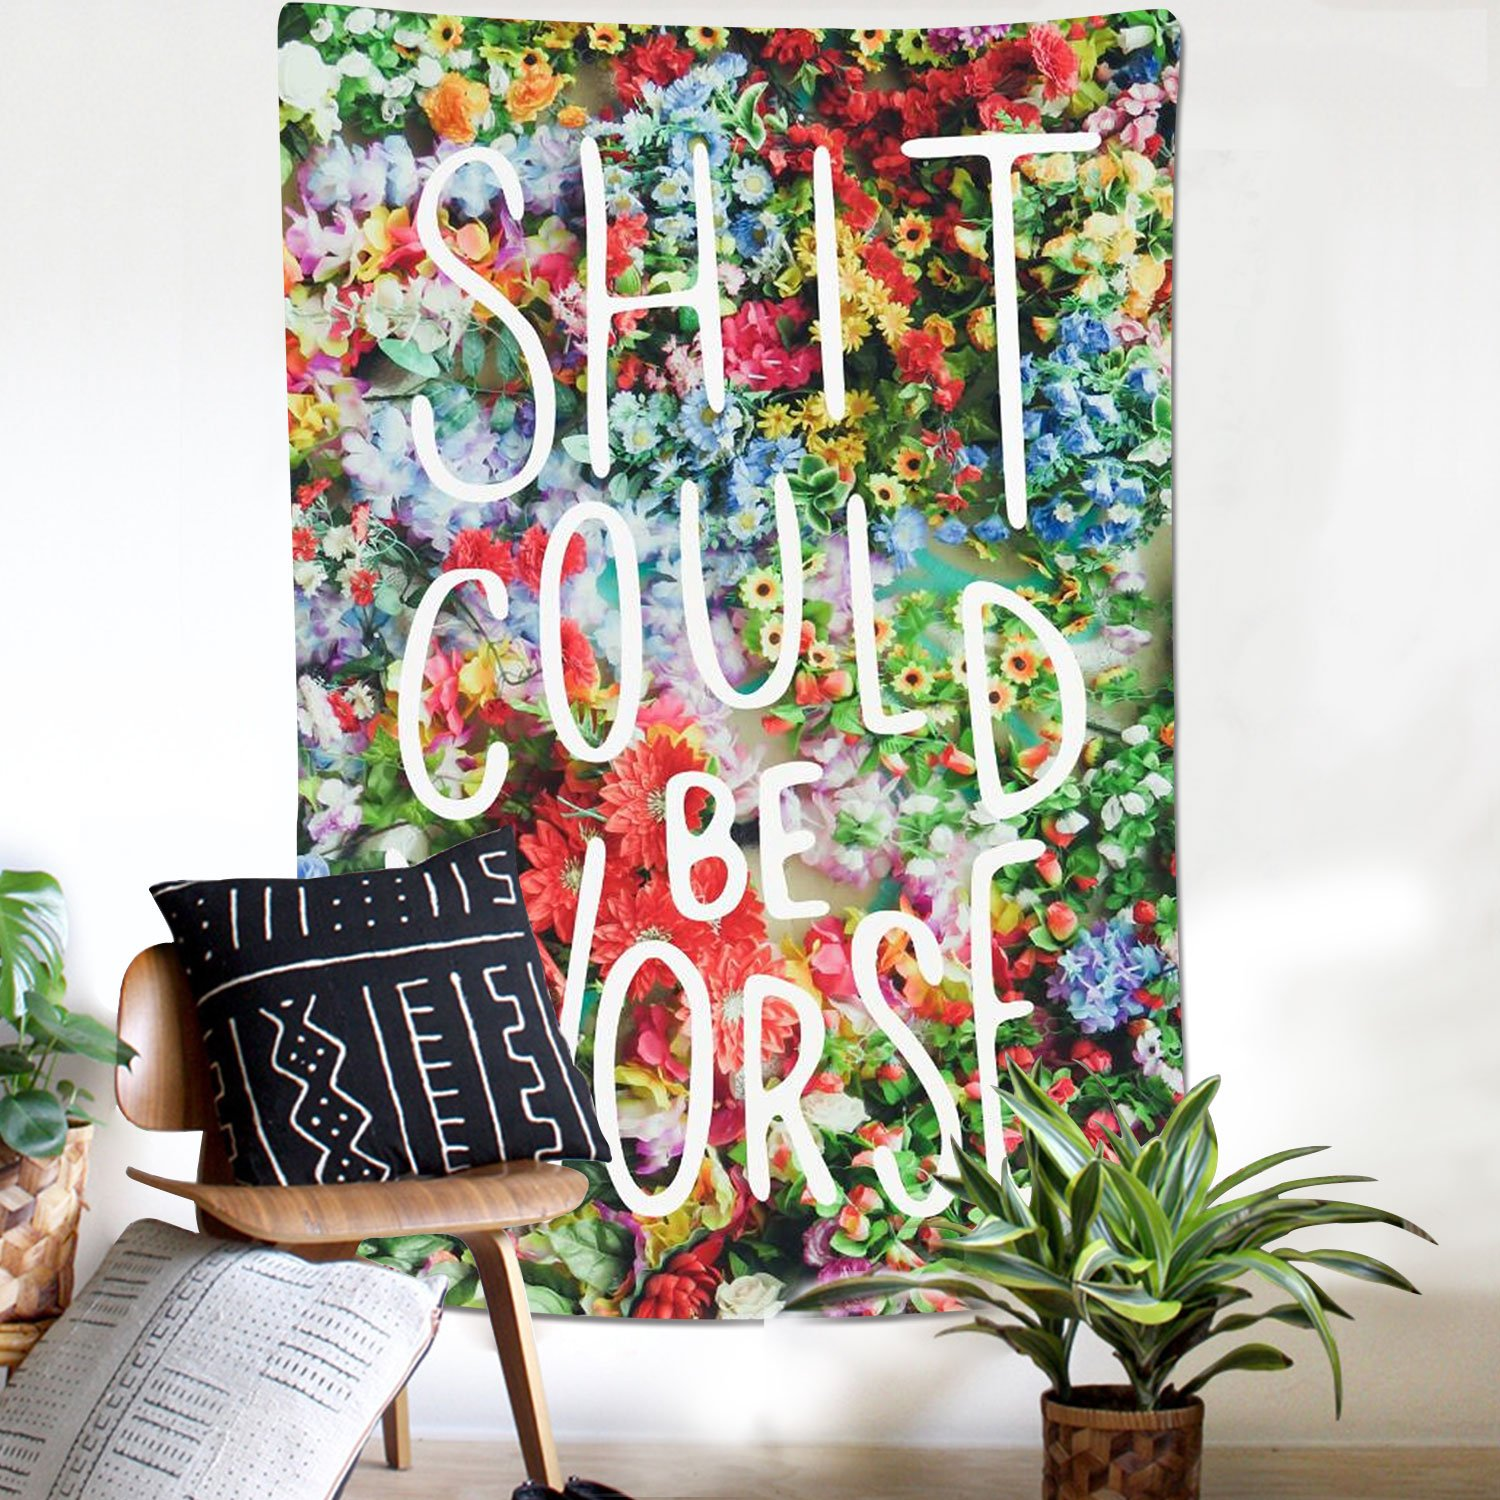 Sunfreem Wall Tapestry Flower with Funny Words Wall Hanging Tapestry Floral Words Tapestry Wall Hanging Quote Tapestry/ for Home Living Room Decor